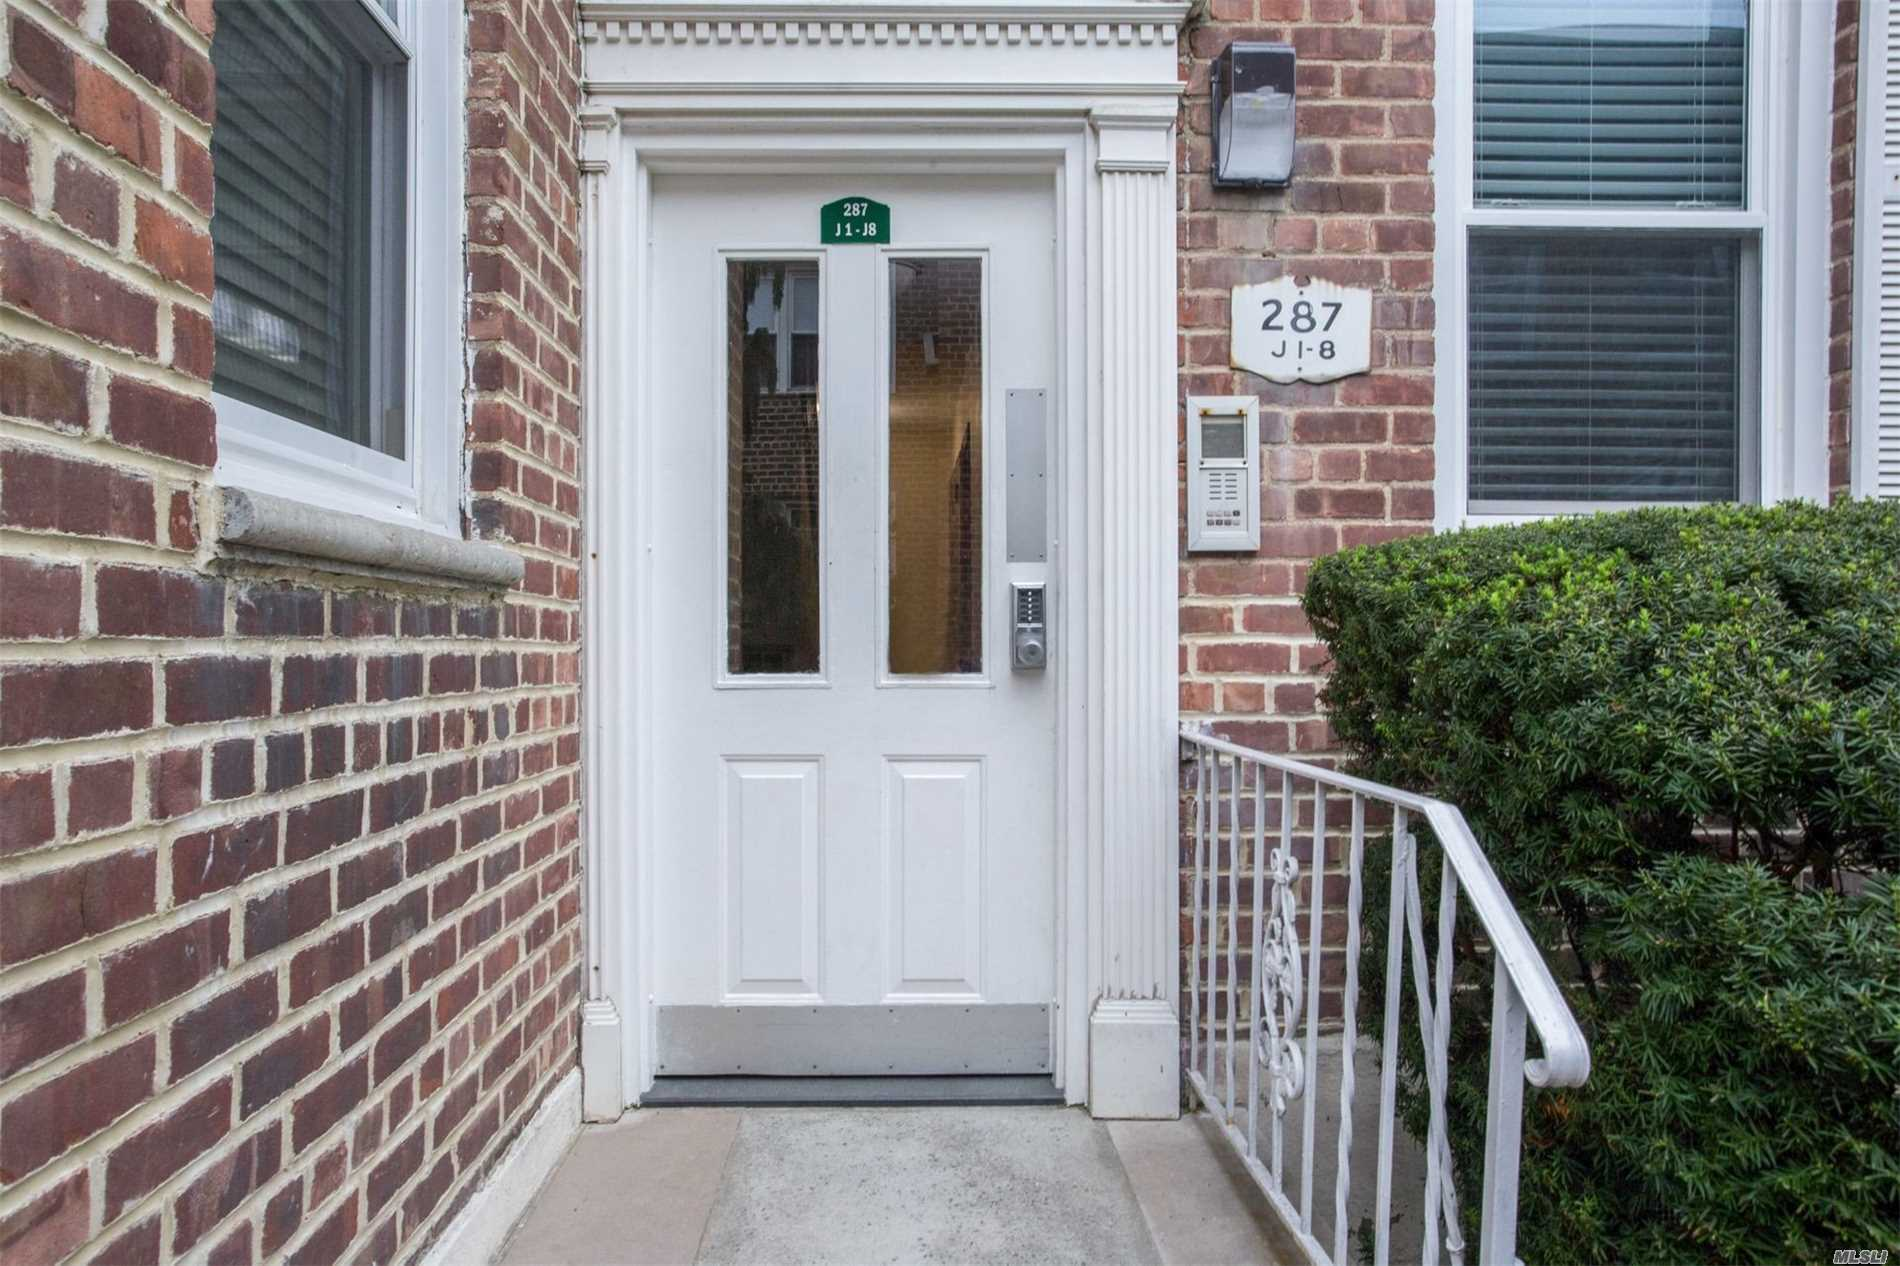 Spectacular, Spacious 1st Floor Apartment! Large Eik, Master Bedroom W/ Full Bath, 2nd Large Bedroom W/ Bath, Extra Large Living Room W/ Designated Dining Area. Walk In Closet In Mstr. Br, Closets Galore. 3 Ceiling Fans & 3 Ac's Included. Pristine Condition. Near All! Best Block In Cedarhurst!